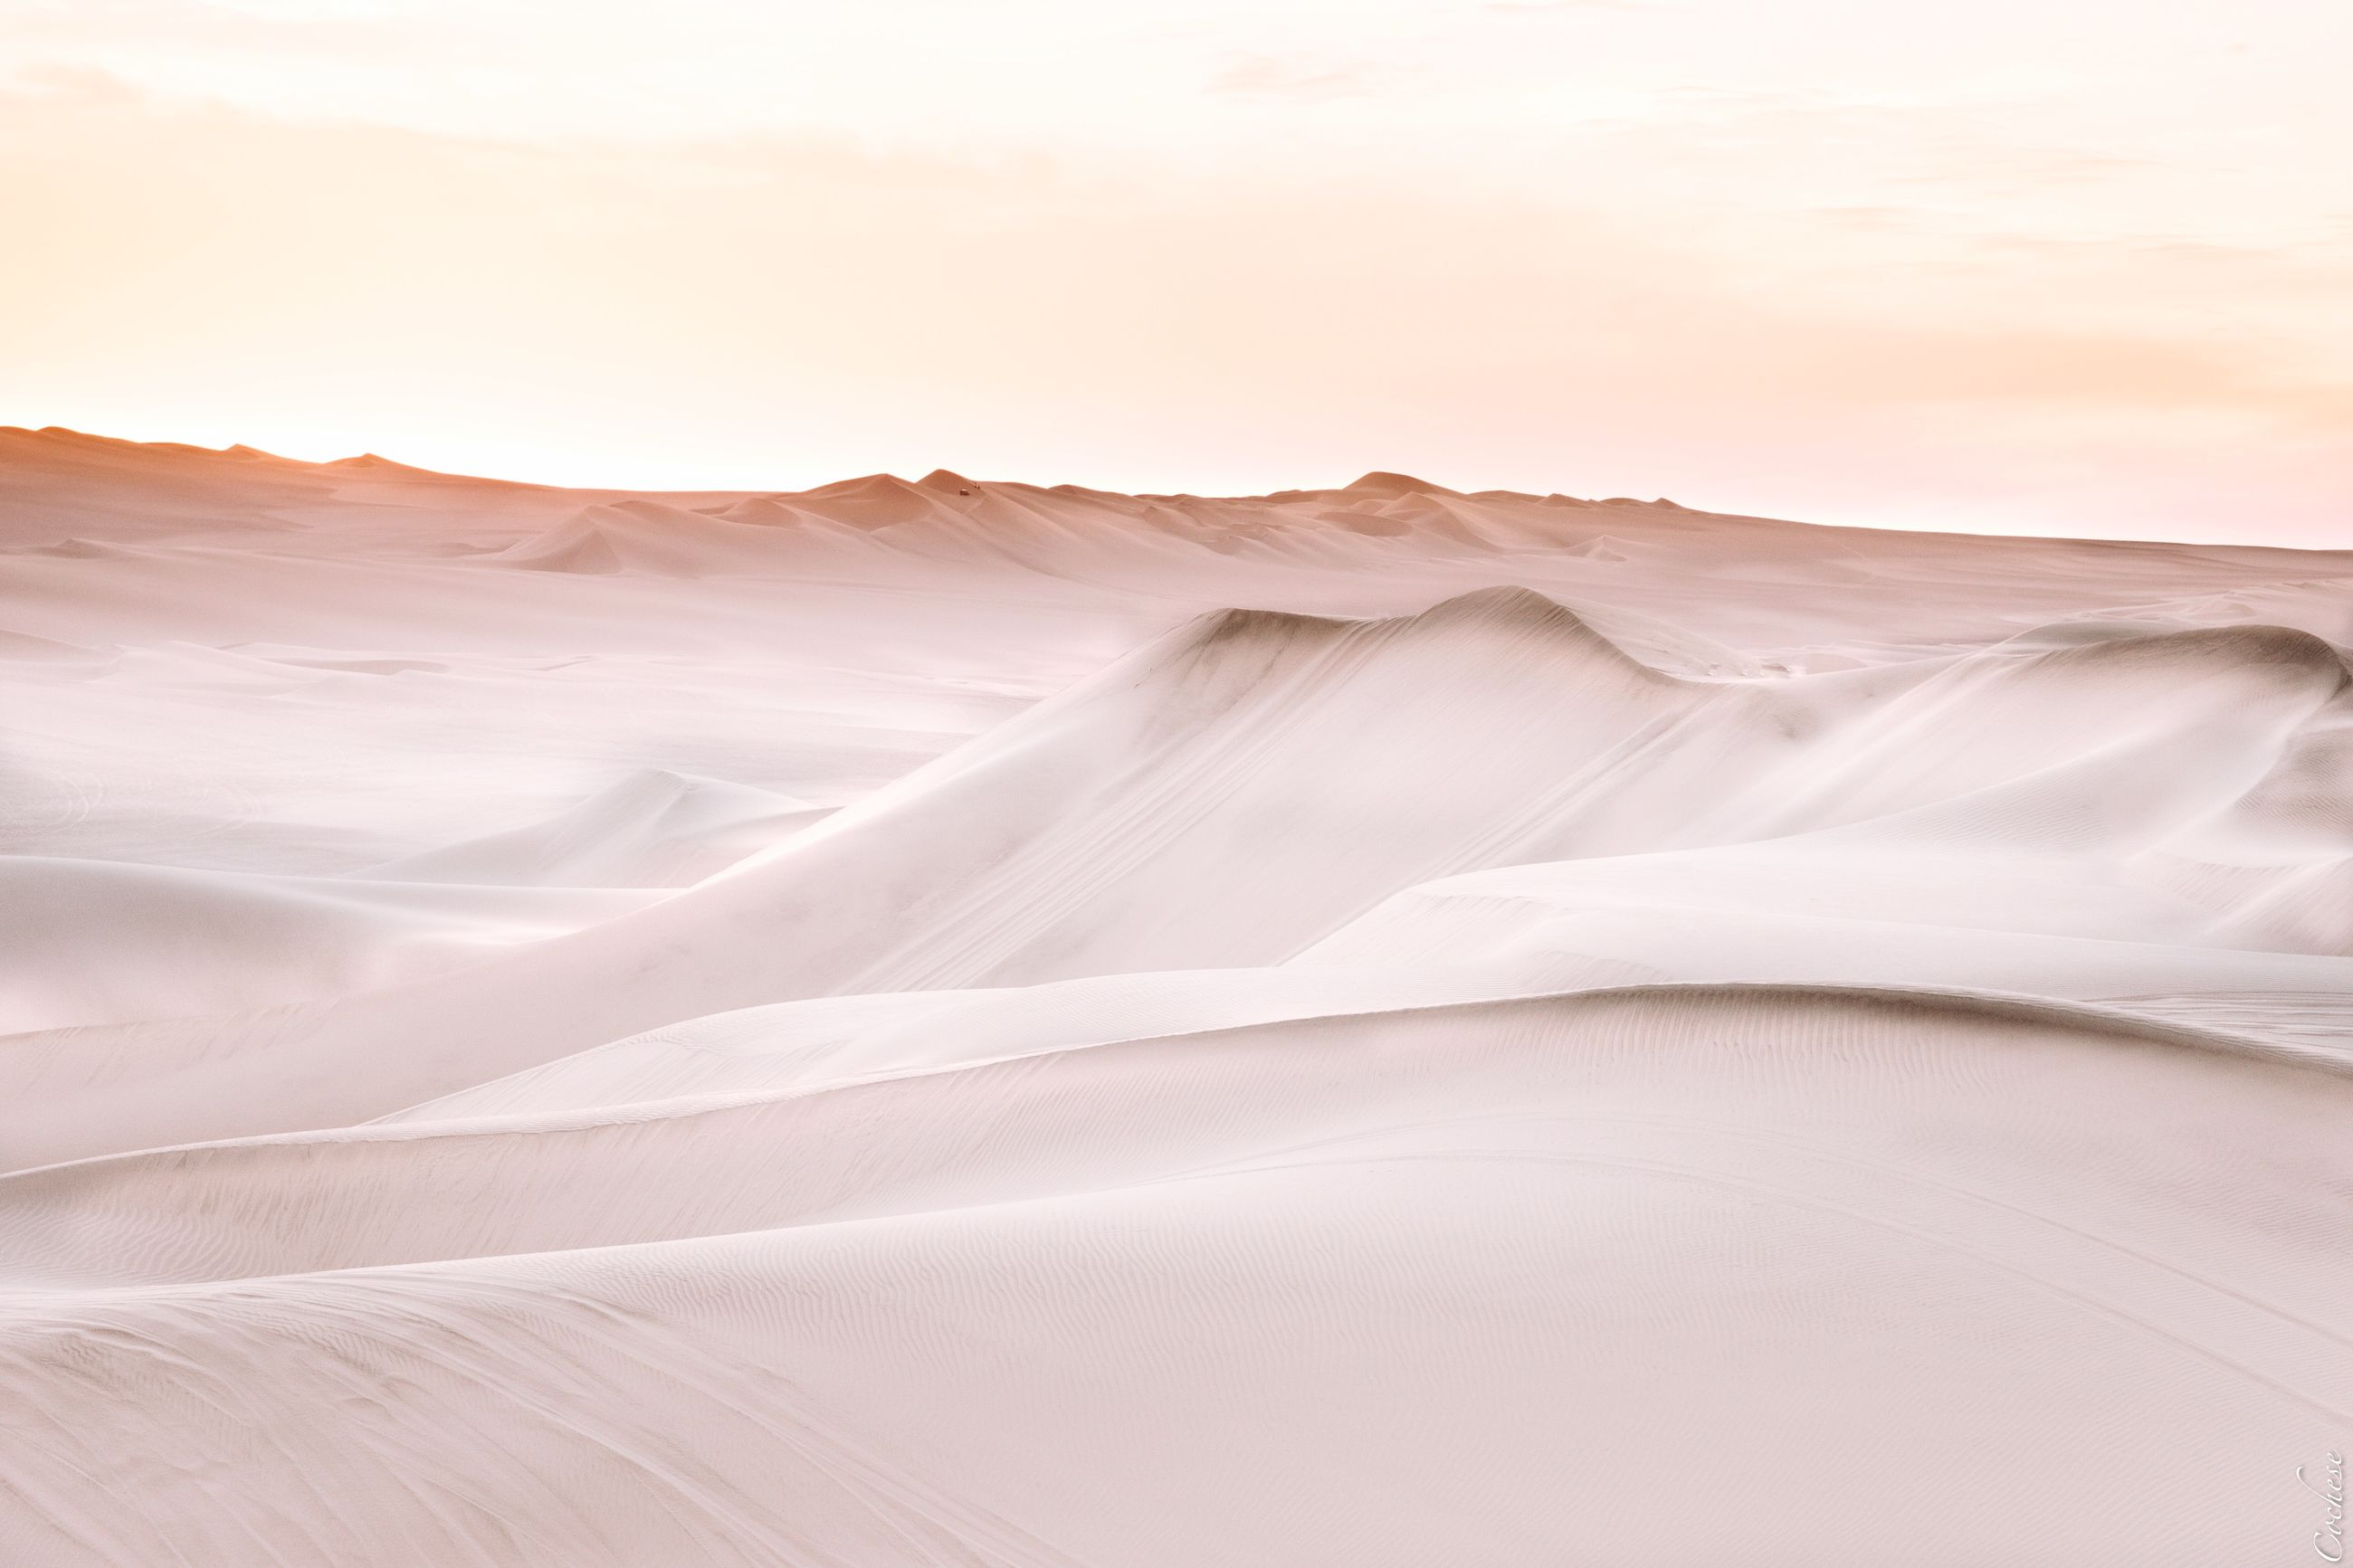 scenics - nature, landscape, beauty in nature, environment, tranquil scene, non-urban scene, tranquility, sand dune, desert, no people, sky, arid climate, climate, remote, land, sand, idyllic, nature, sunset, white color